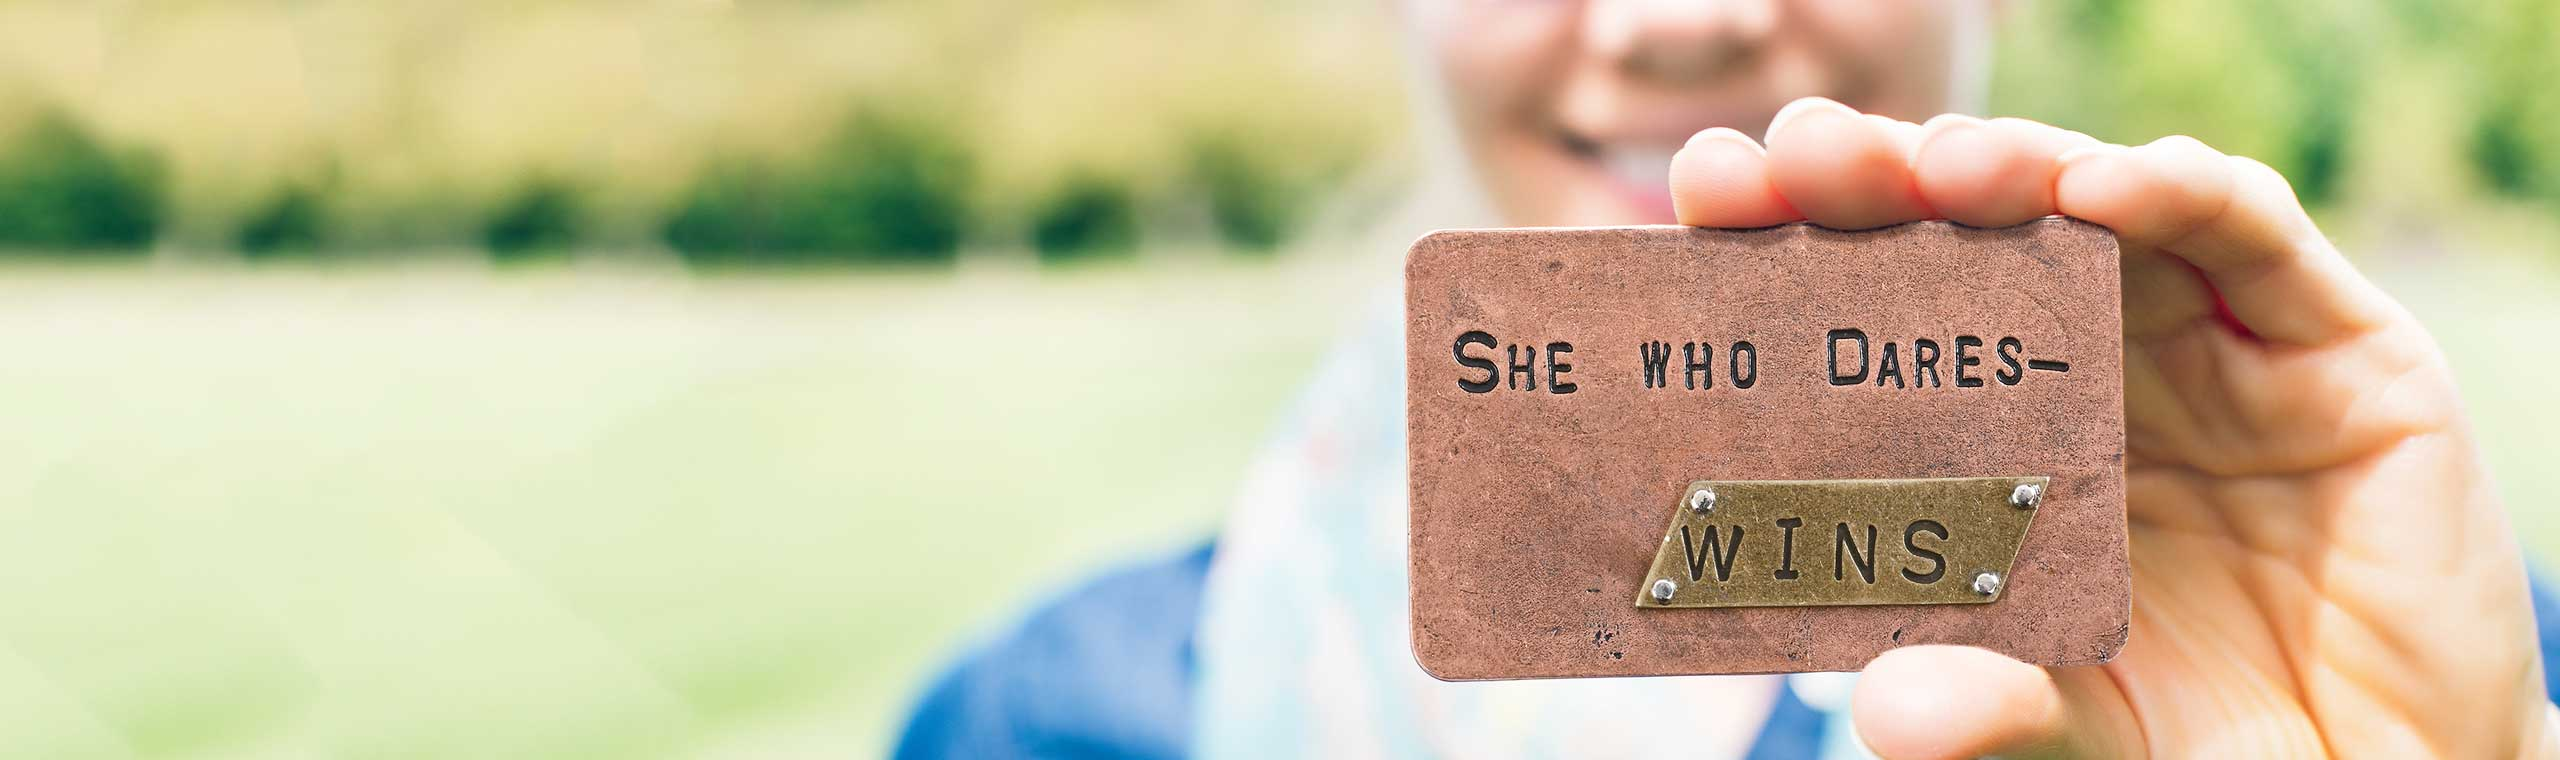 Woman holding a metal card with the words She Who Dares - Wins